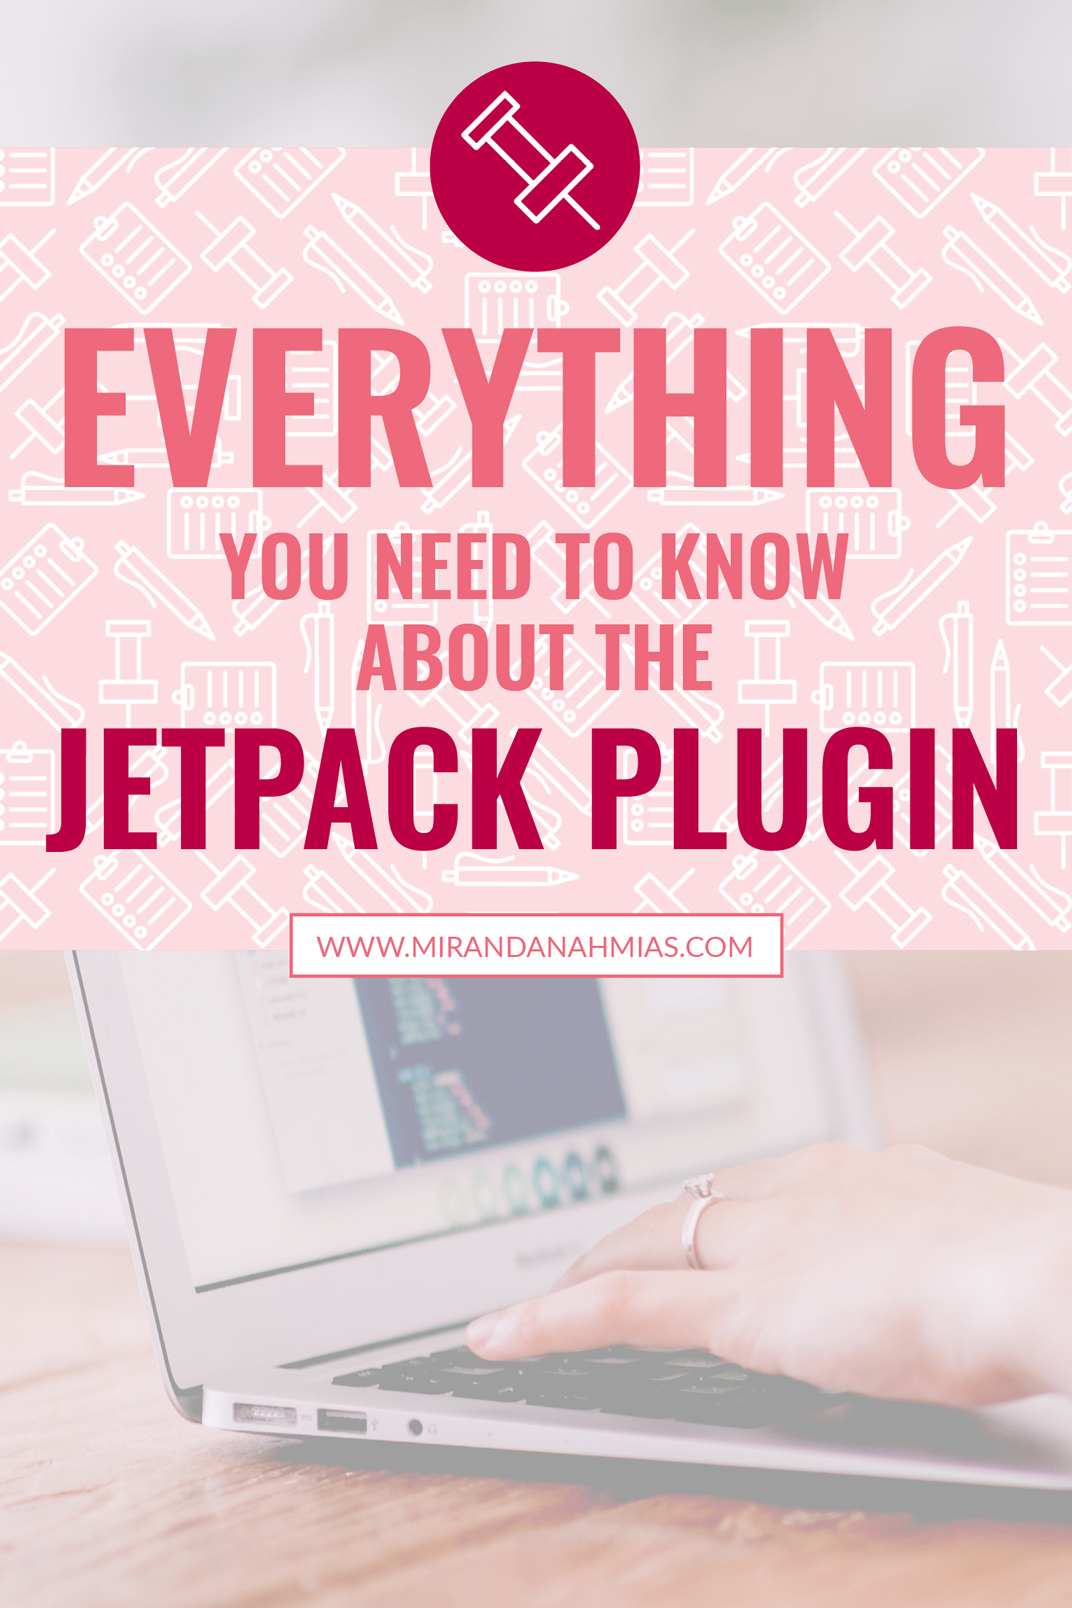 Everything You Need to Know About the Jetpack Plugin! This badass Wordpress plugin has 37 built-in features that you probably don't even know about! // Miranda Nahmias